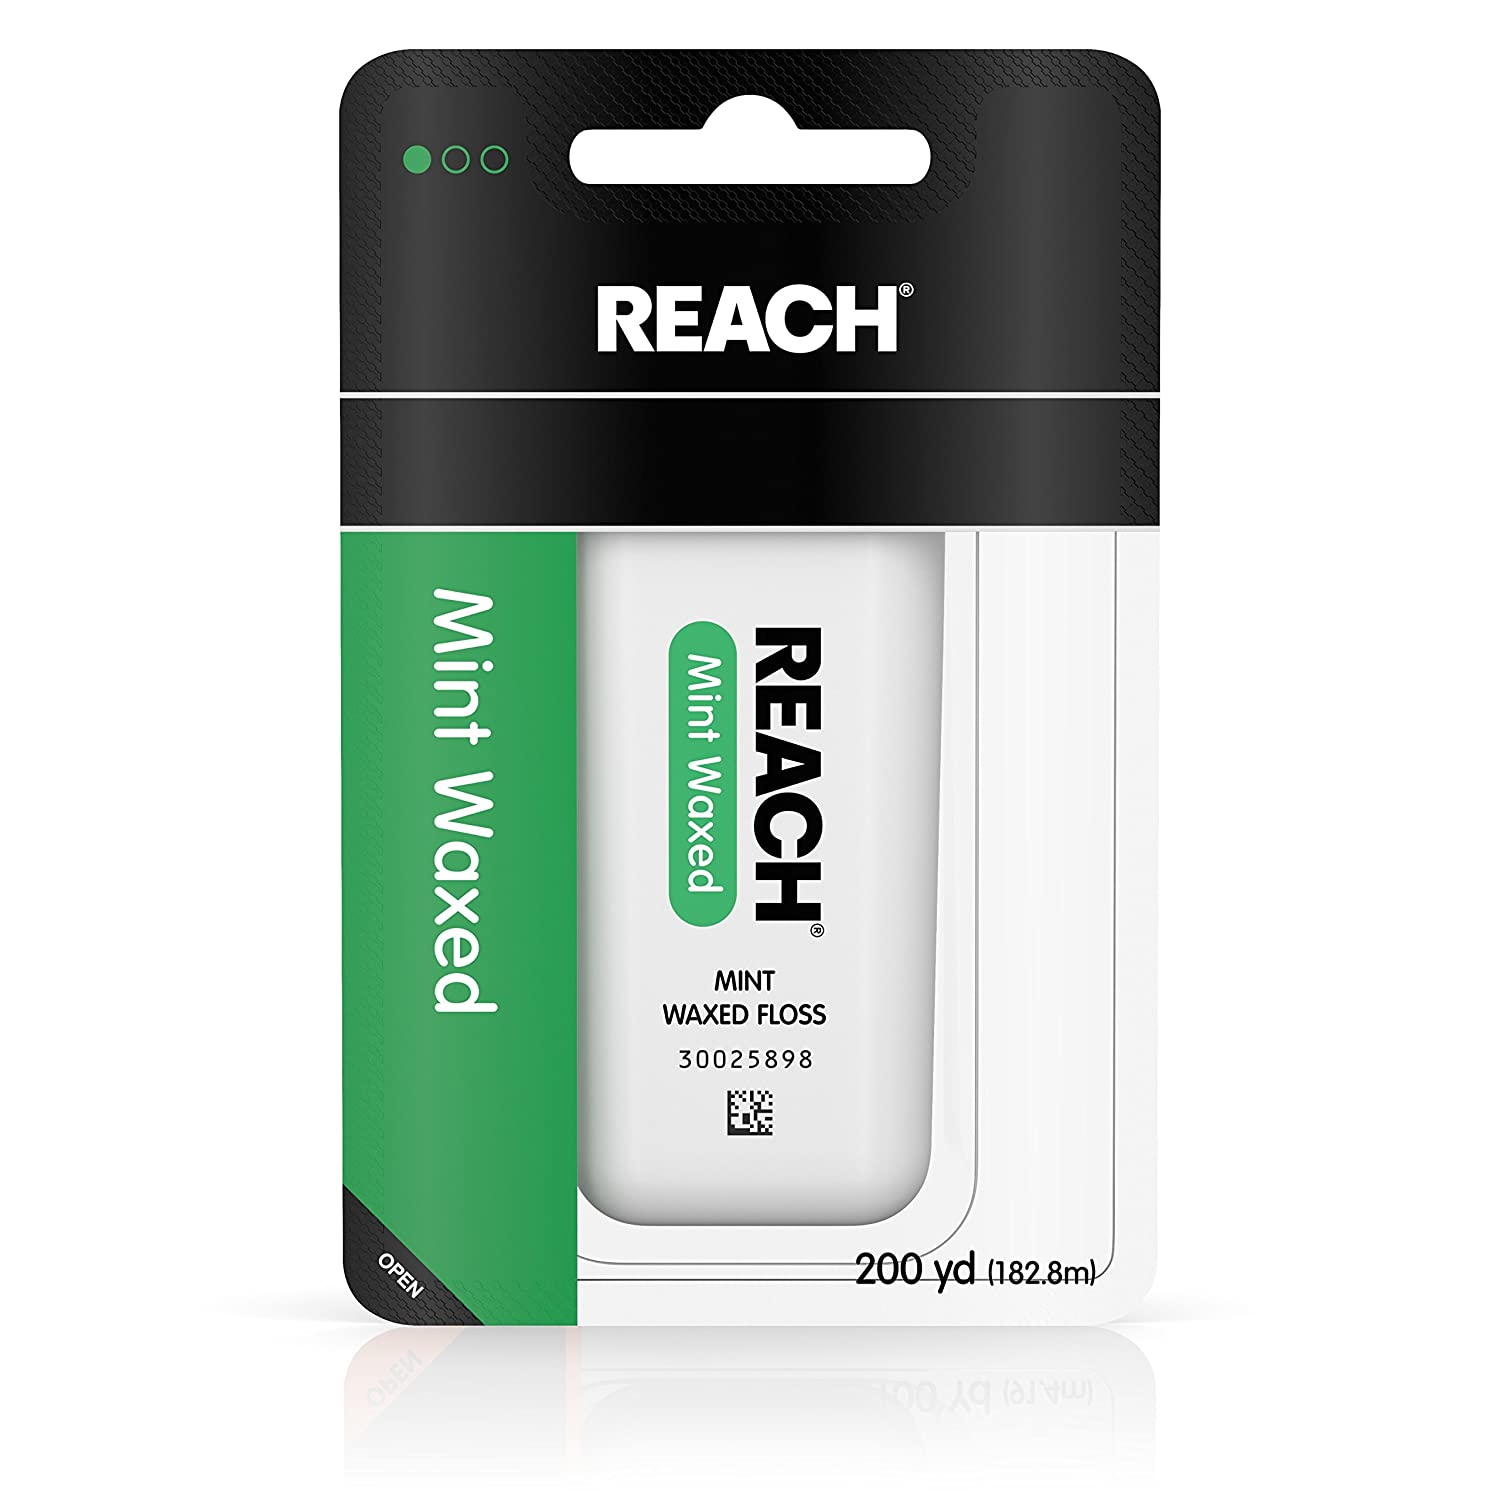 Reach Dental Floss, Waxed, Mint, 200 Yard Johnson & Johnson Reach 381370092346